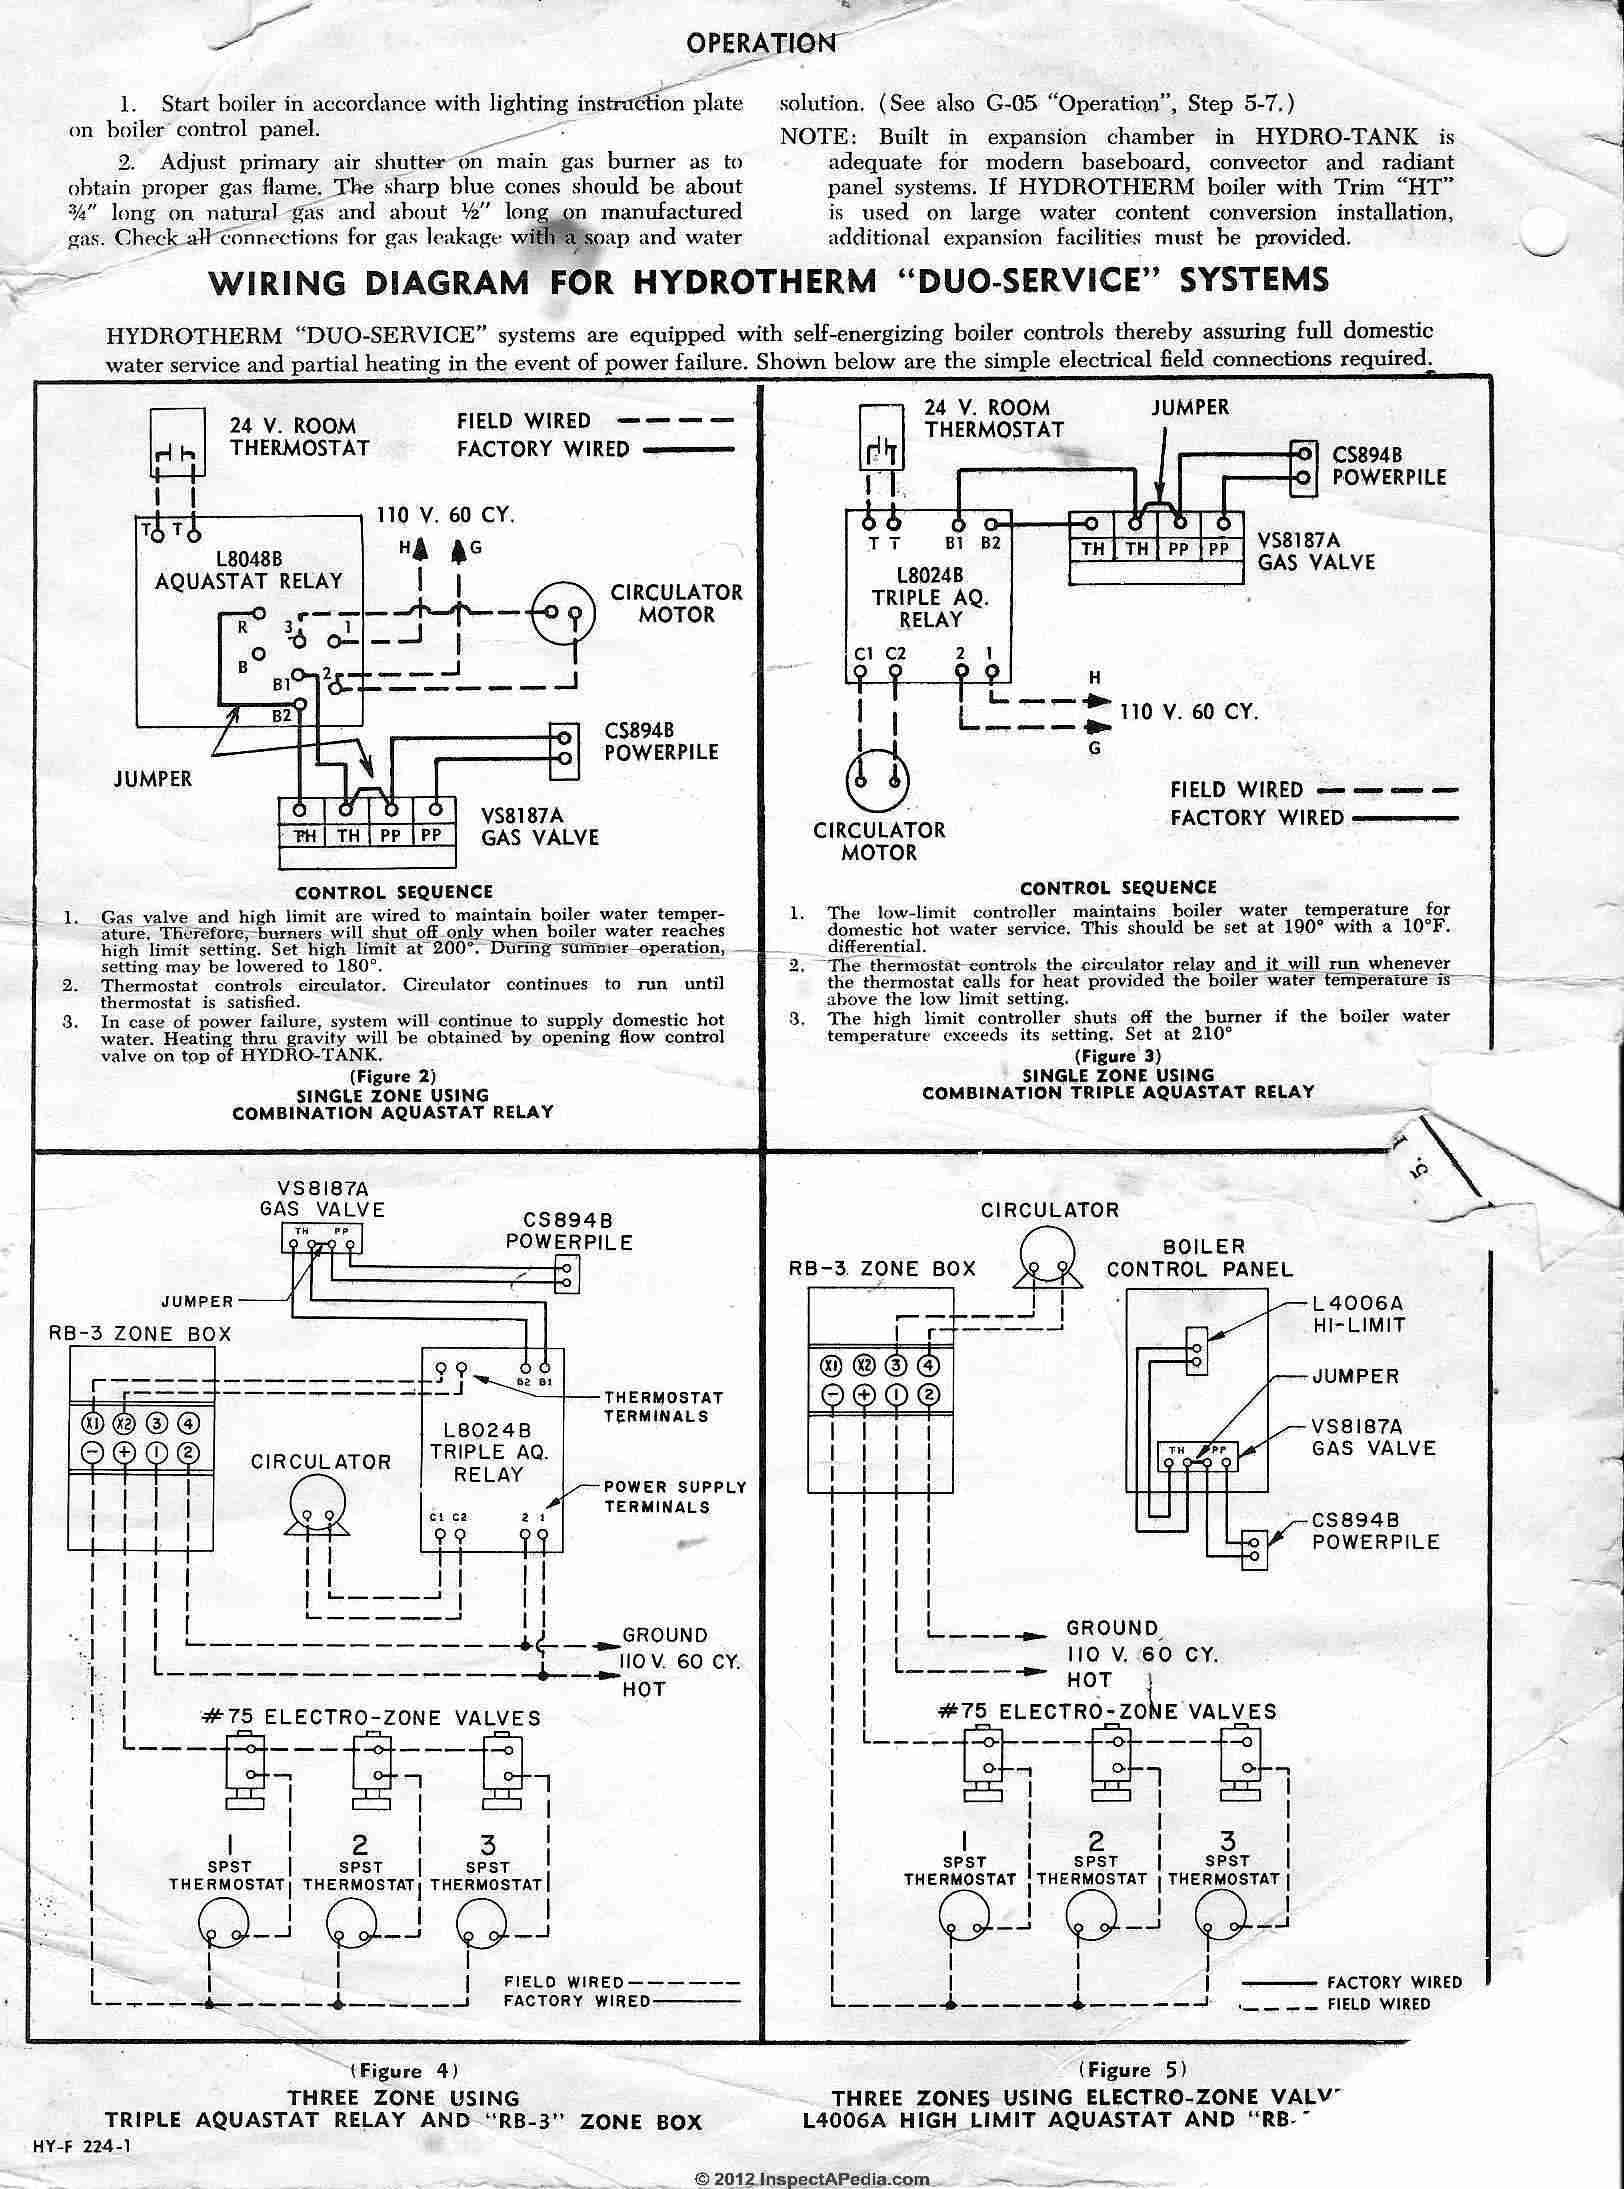 L8024B_Aquastat_0422_DJFcs heating boiler aquastat control diagnosis, troubleshooting, repair honeywell relay wiring diagram at edmiracle.co